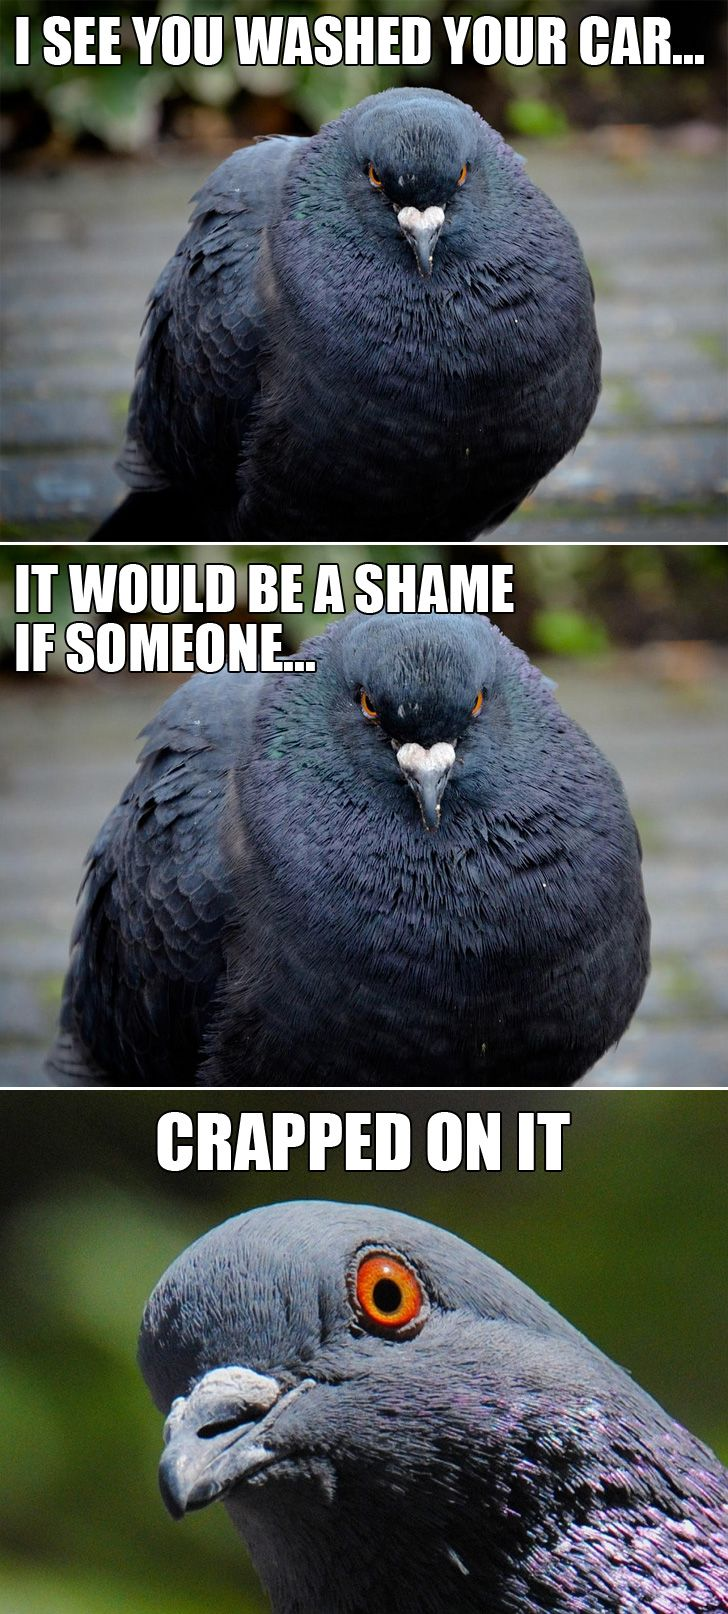 lol scary pigeon